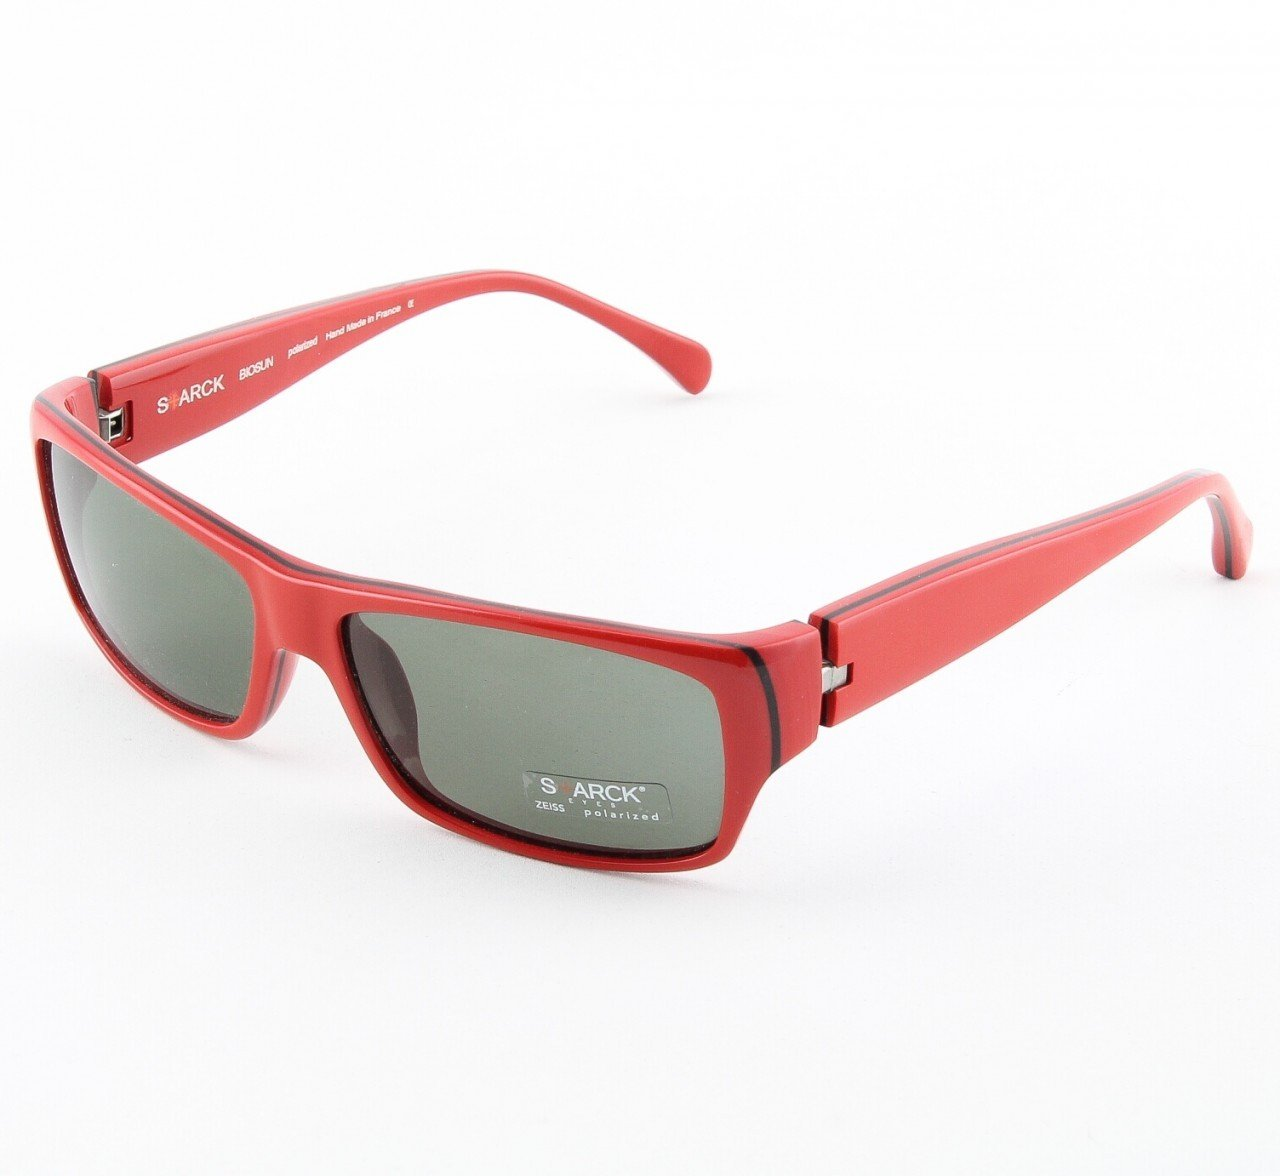 Starck Sunglasses P0518 Col. 28 Red with Black Polarized Lenses